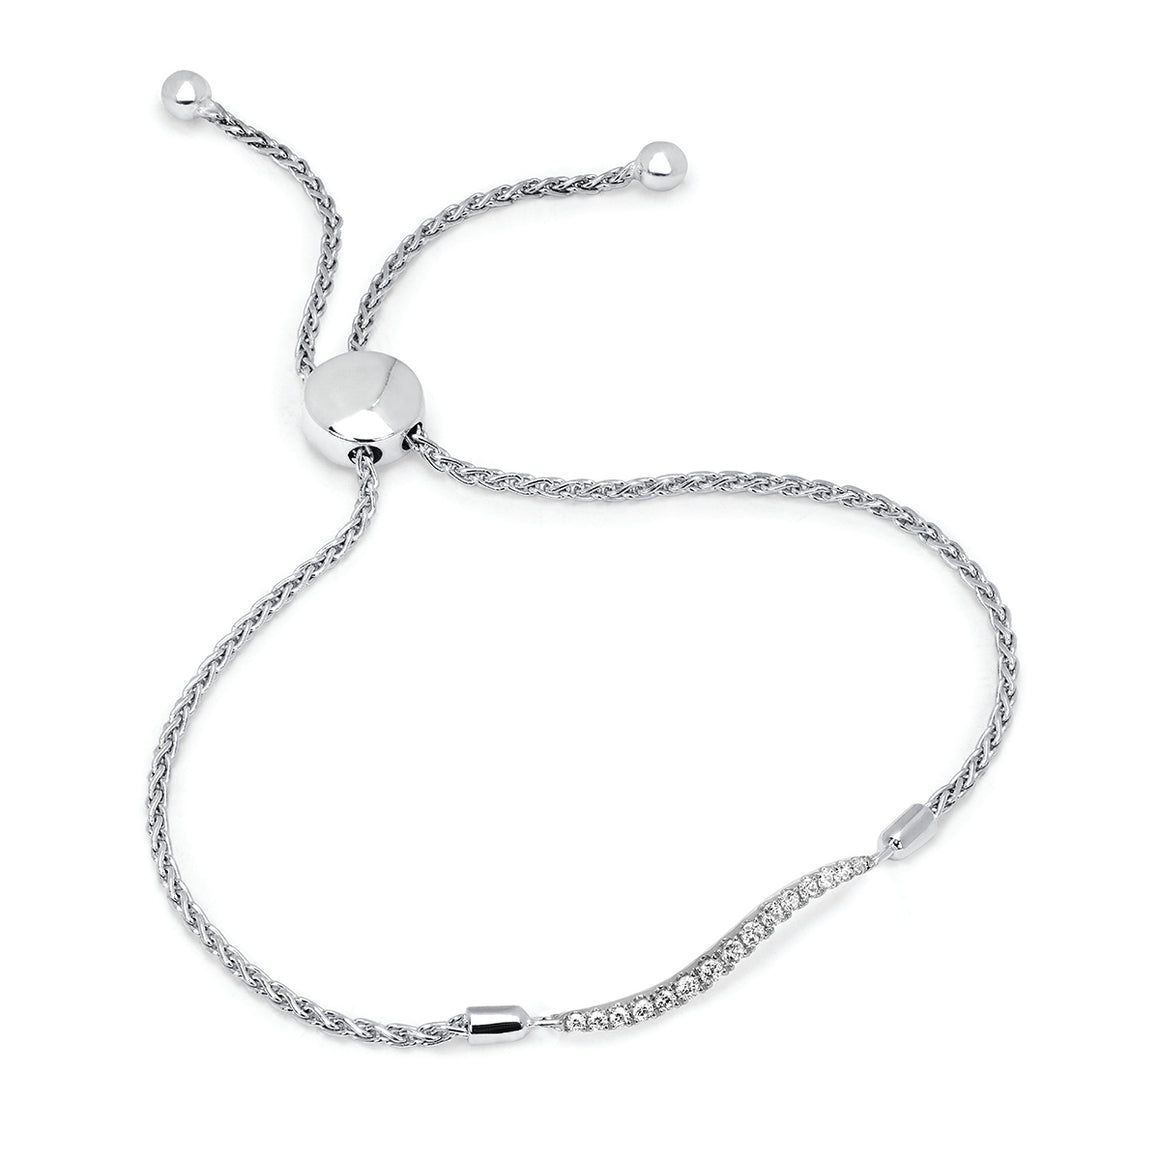 14k White Gold Diamond Bar Bracelet - Talisman Collection